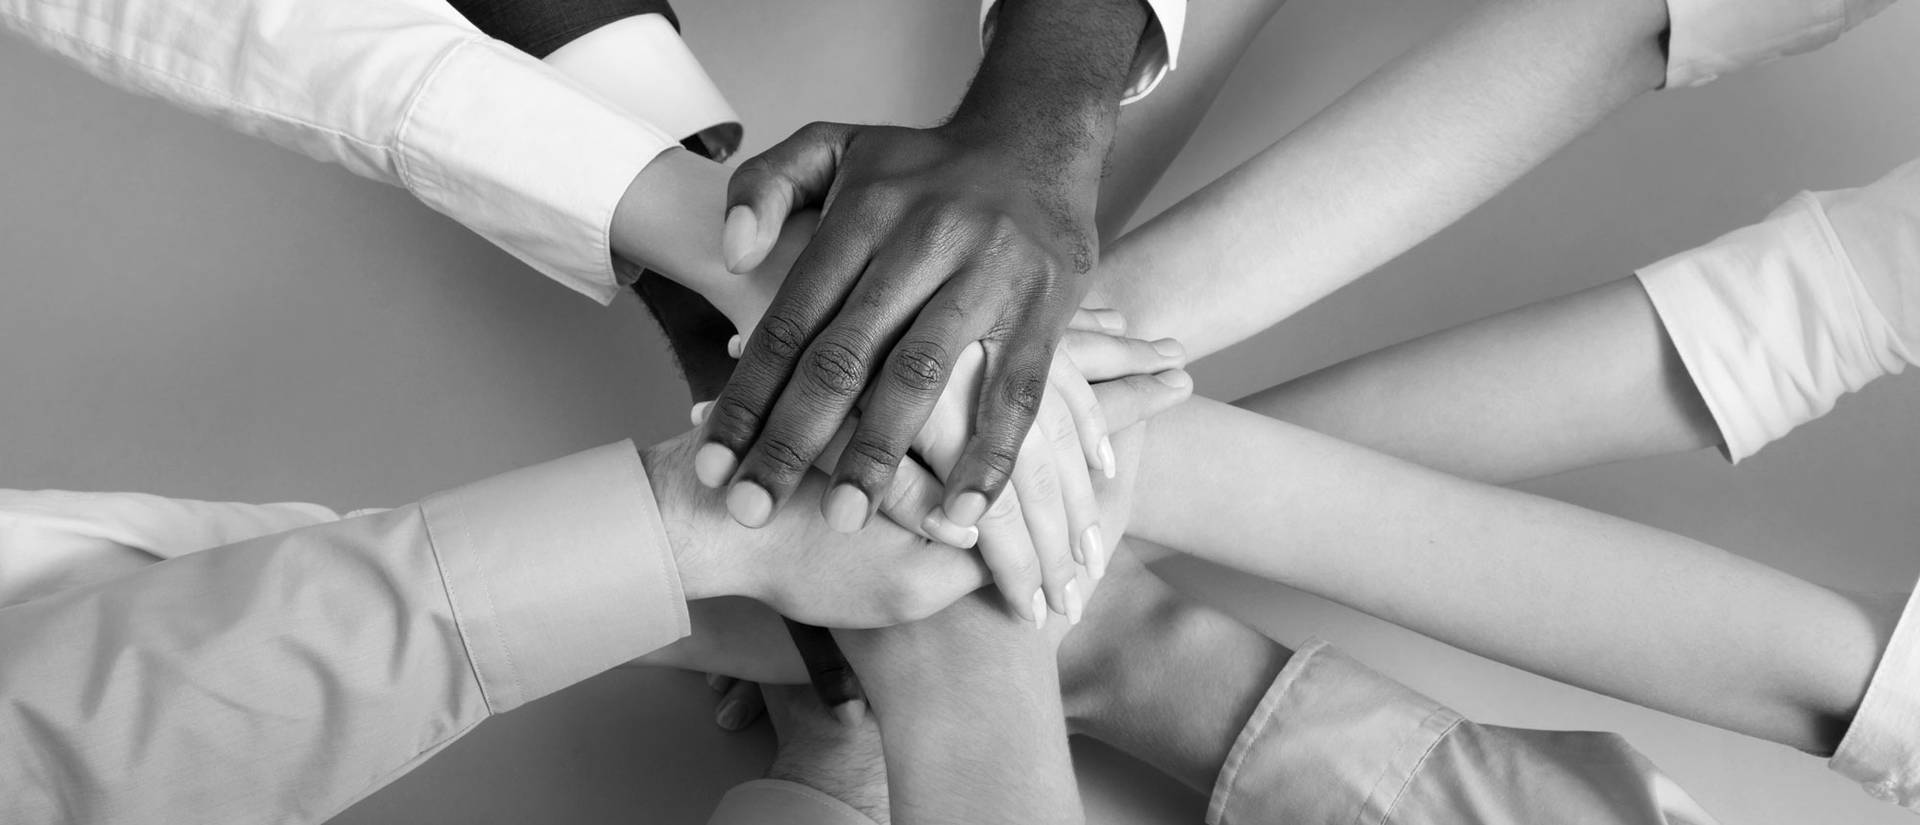 Hands together in a huddle